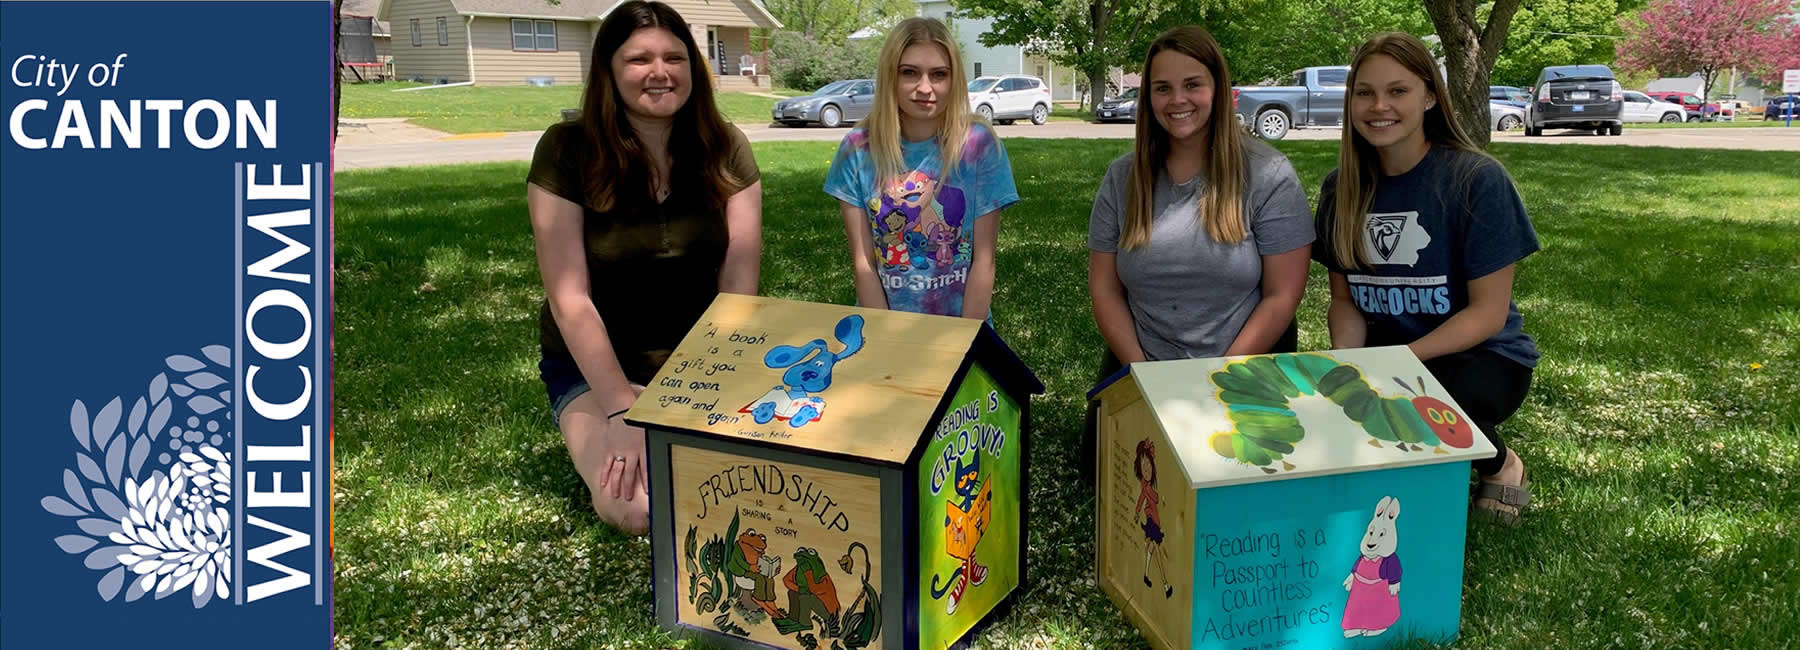 City of Canton MN Sharing Library Artists